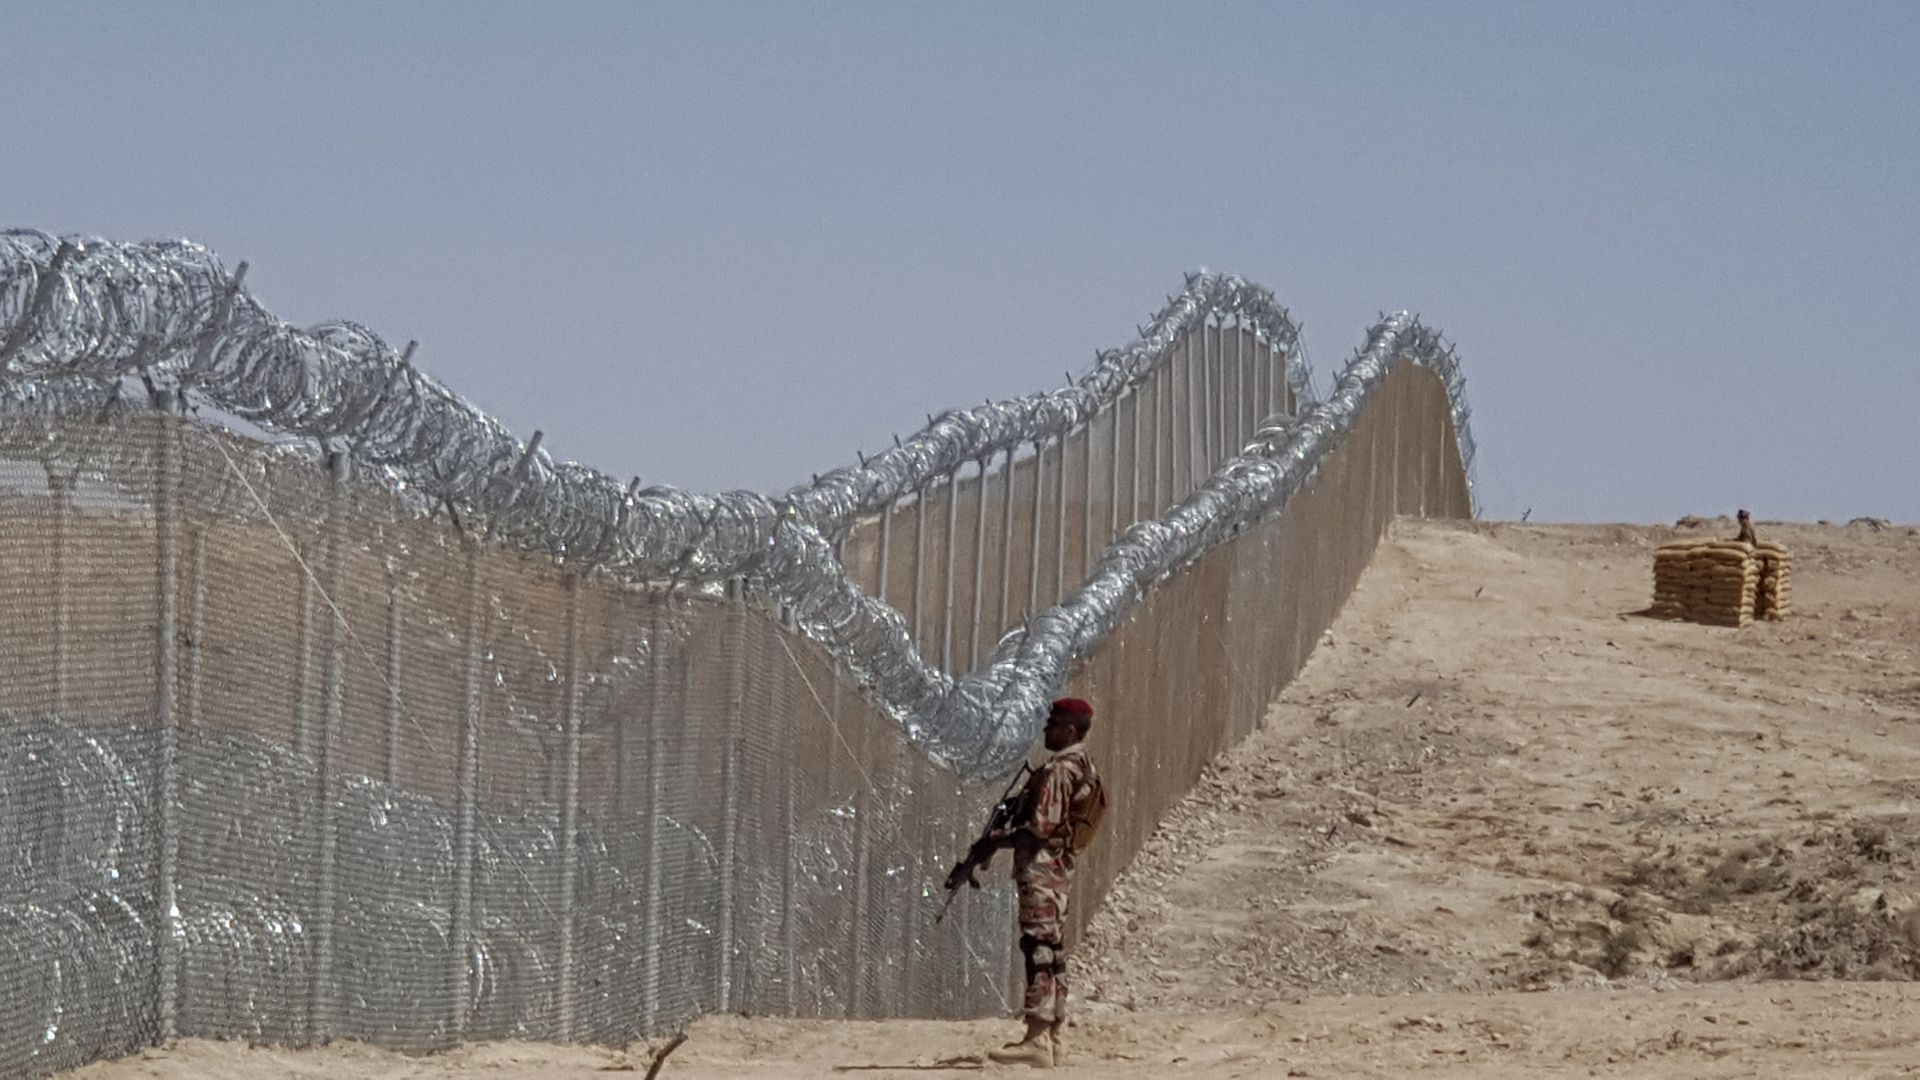 A Pakistani army soldier stands guard along with border fence at the Pak-Afghan border near the Punjpai area of Quetta in Balochistan on May 8, 2018.